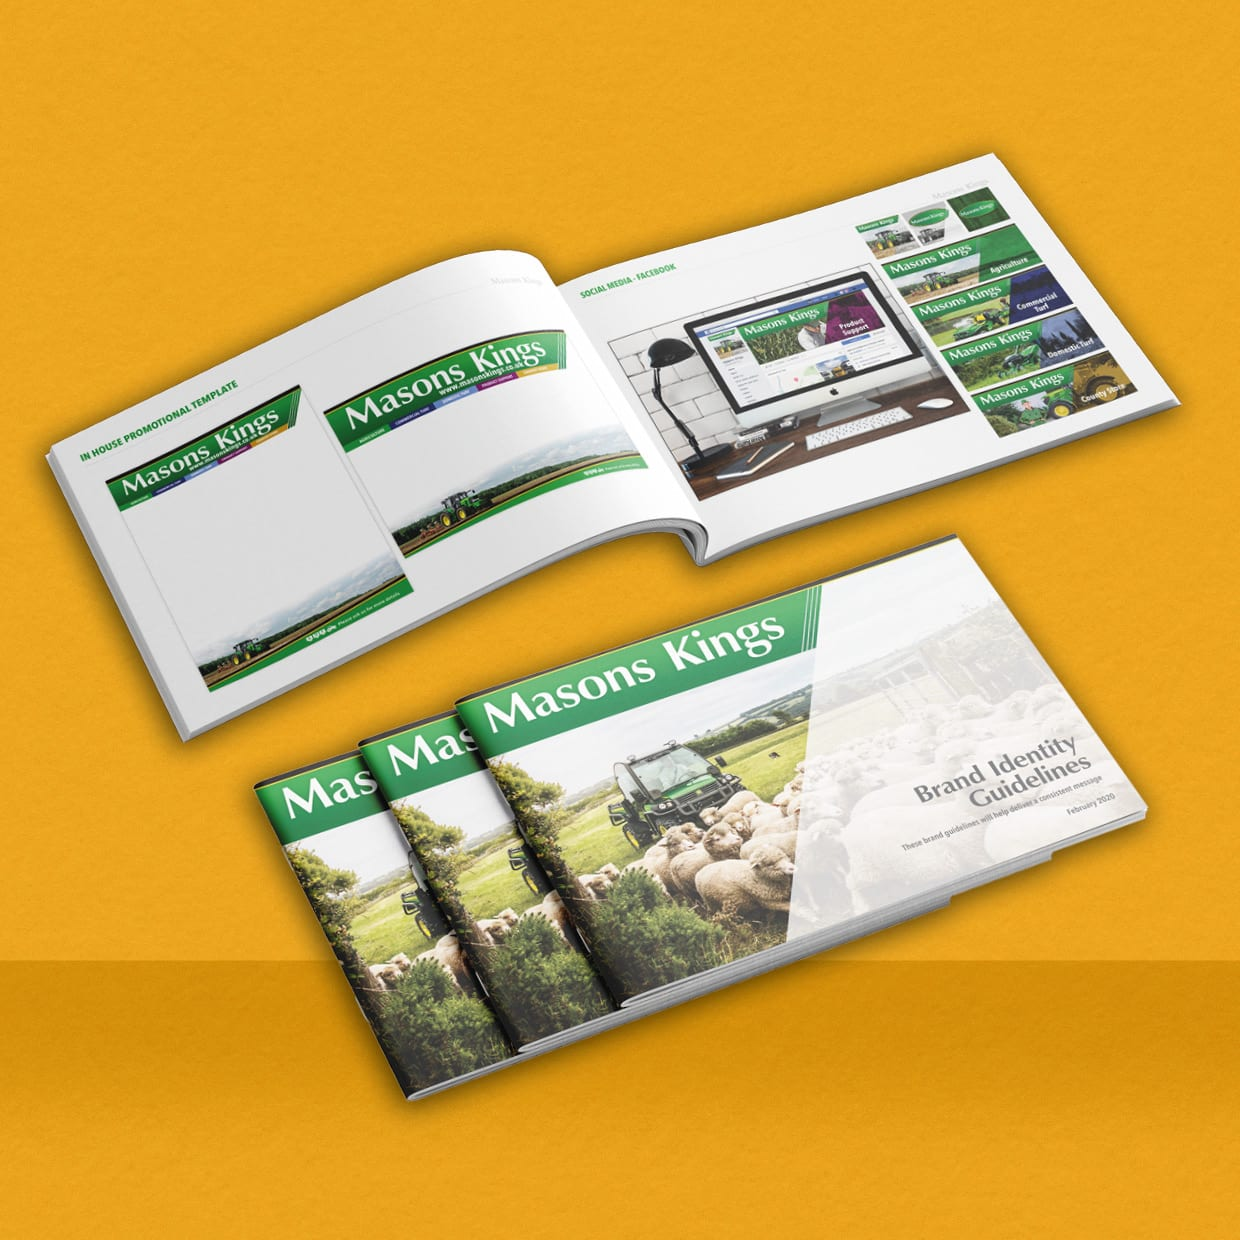 Masons Kings brand guidelines booklet artwork and print